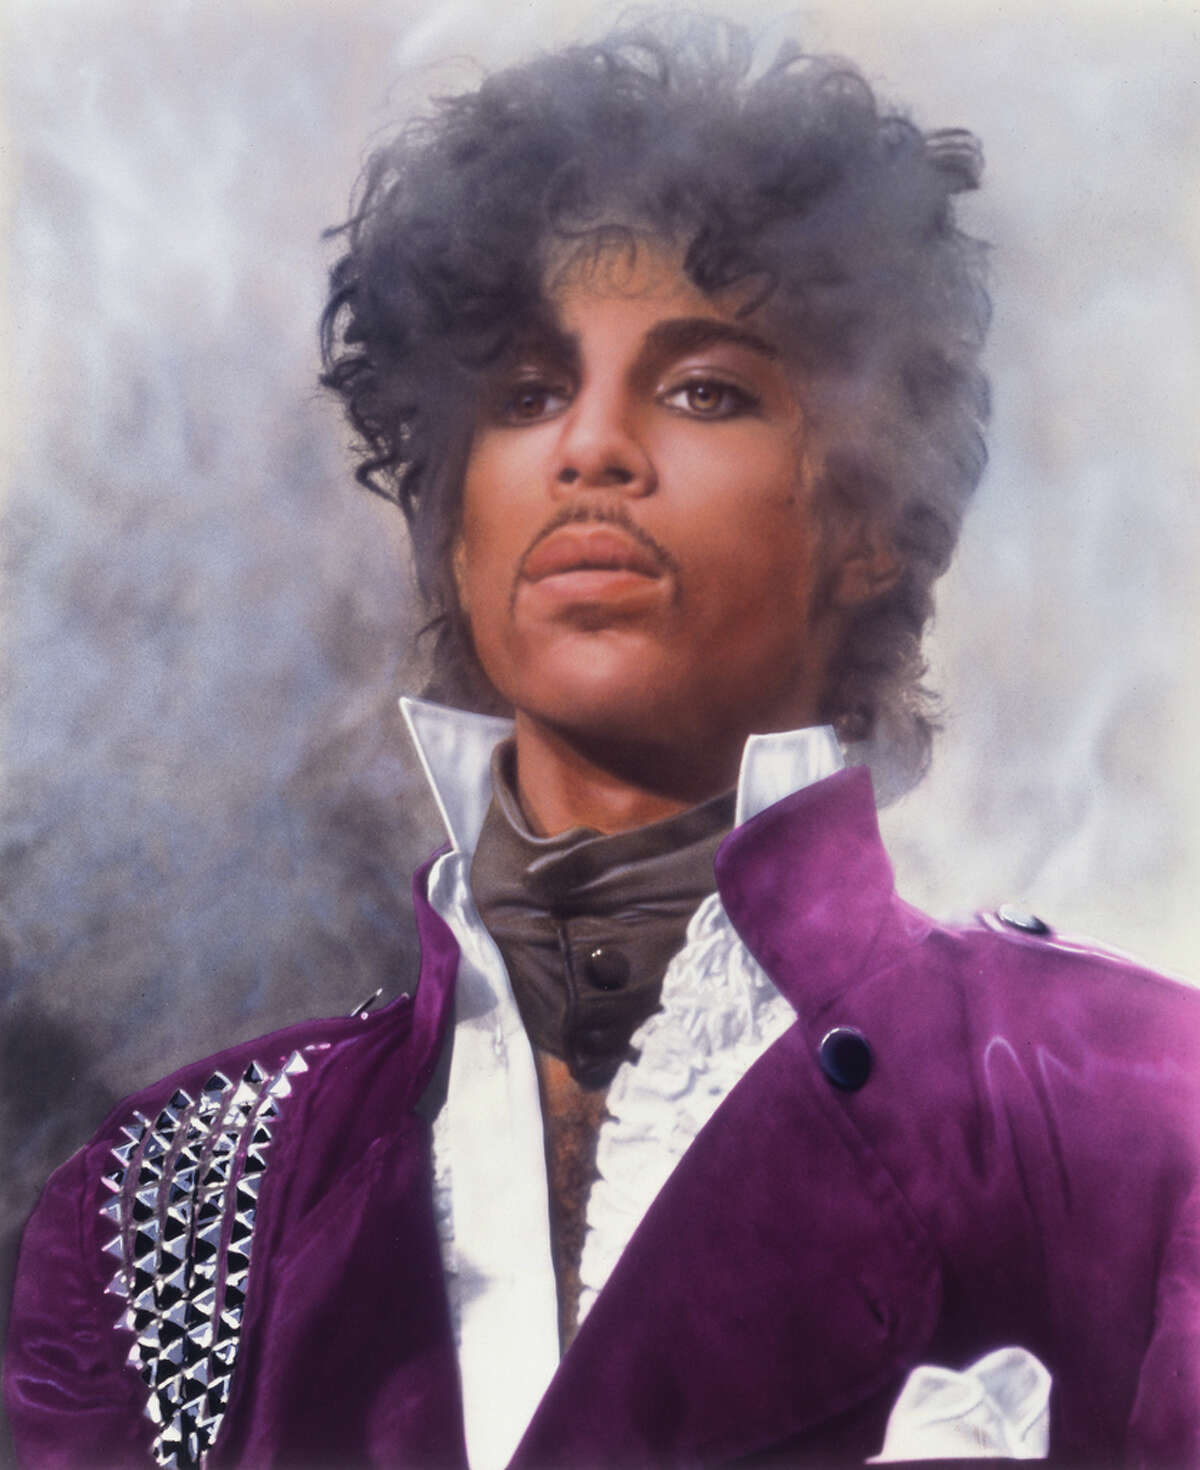 Prince had a major breakthrough with his '1999' album, released in 1982.